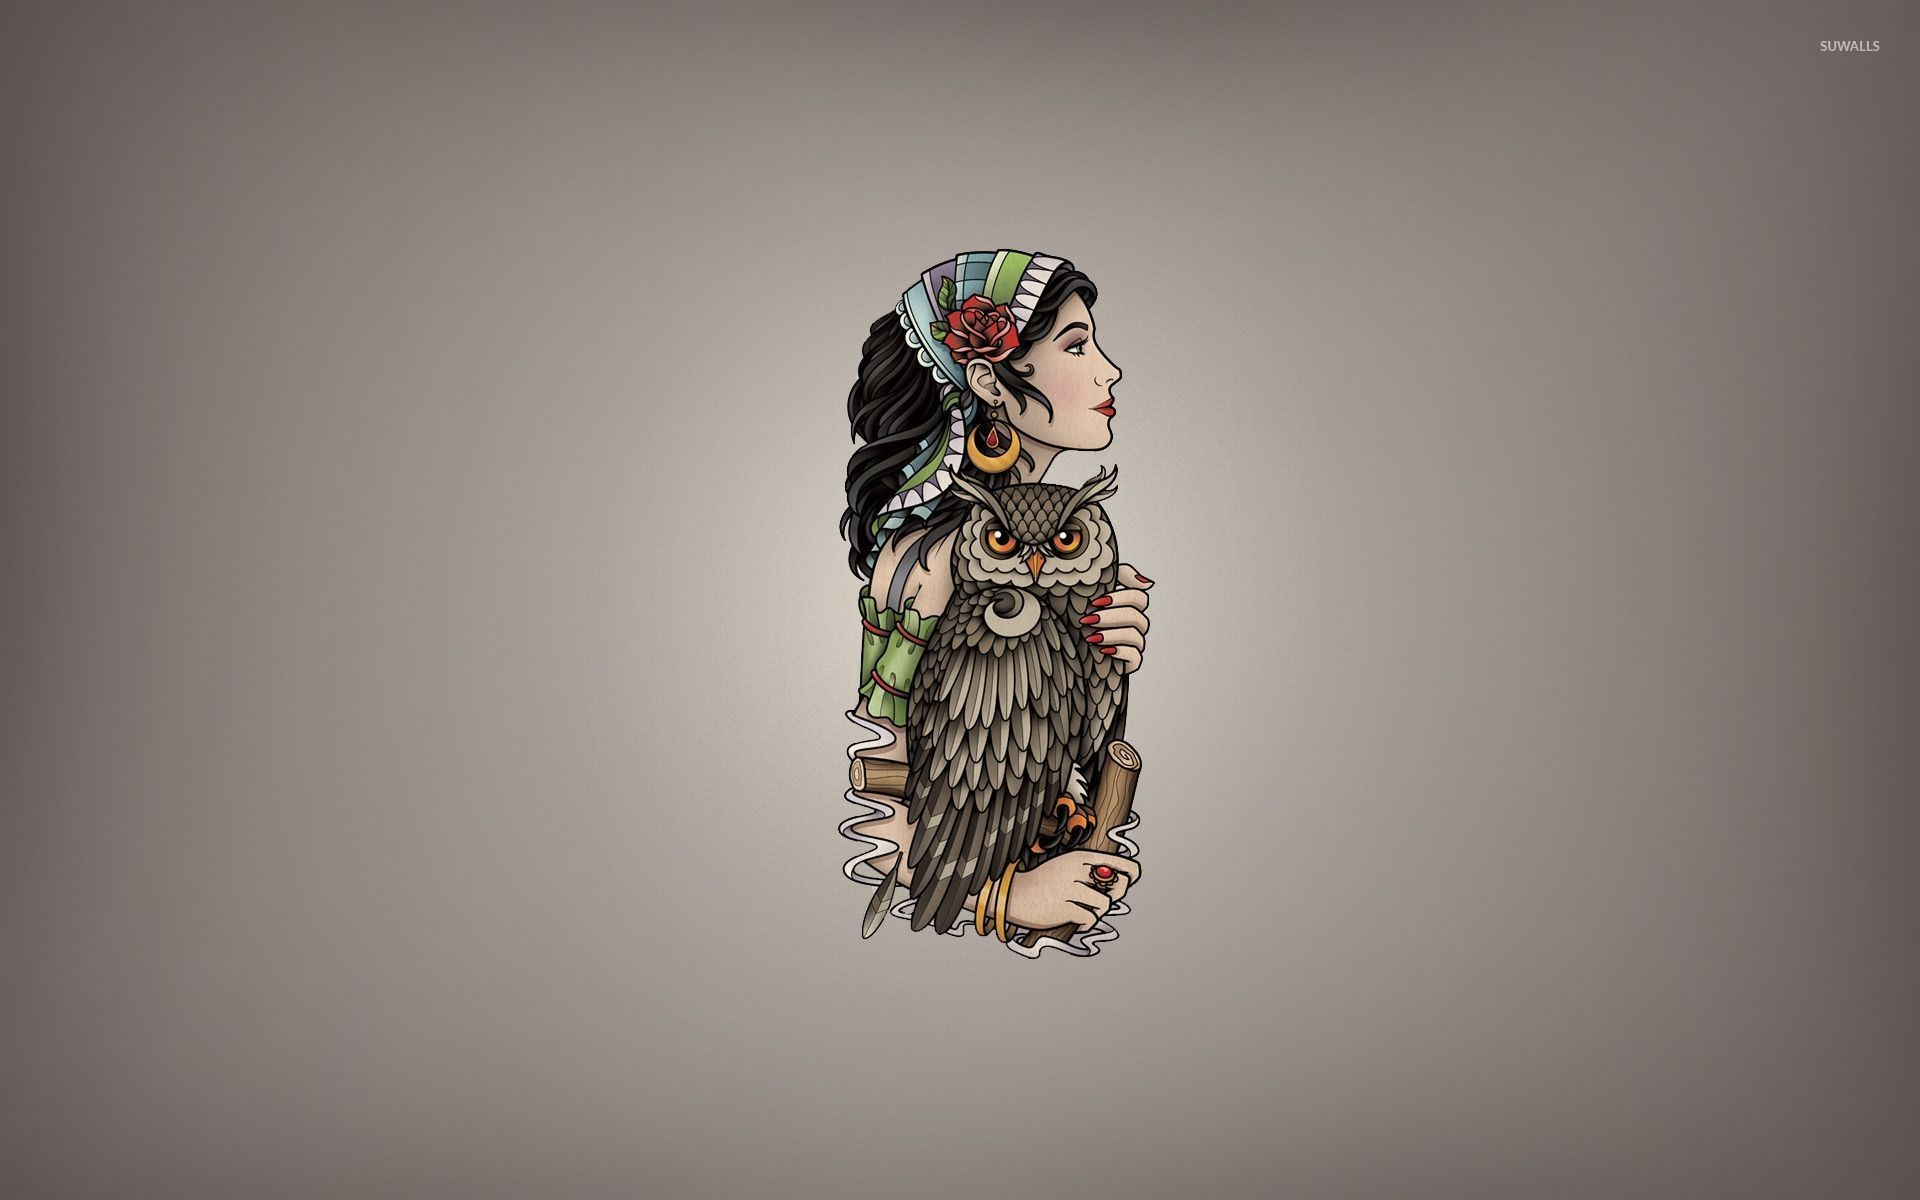 1920x1200 Girl with a scarf holding the owl wallpaper